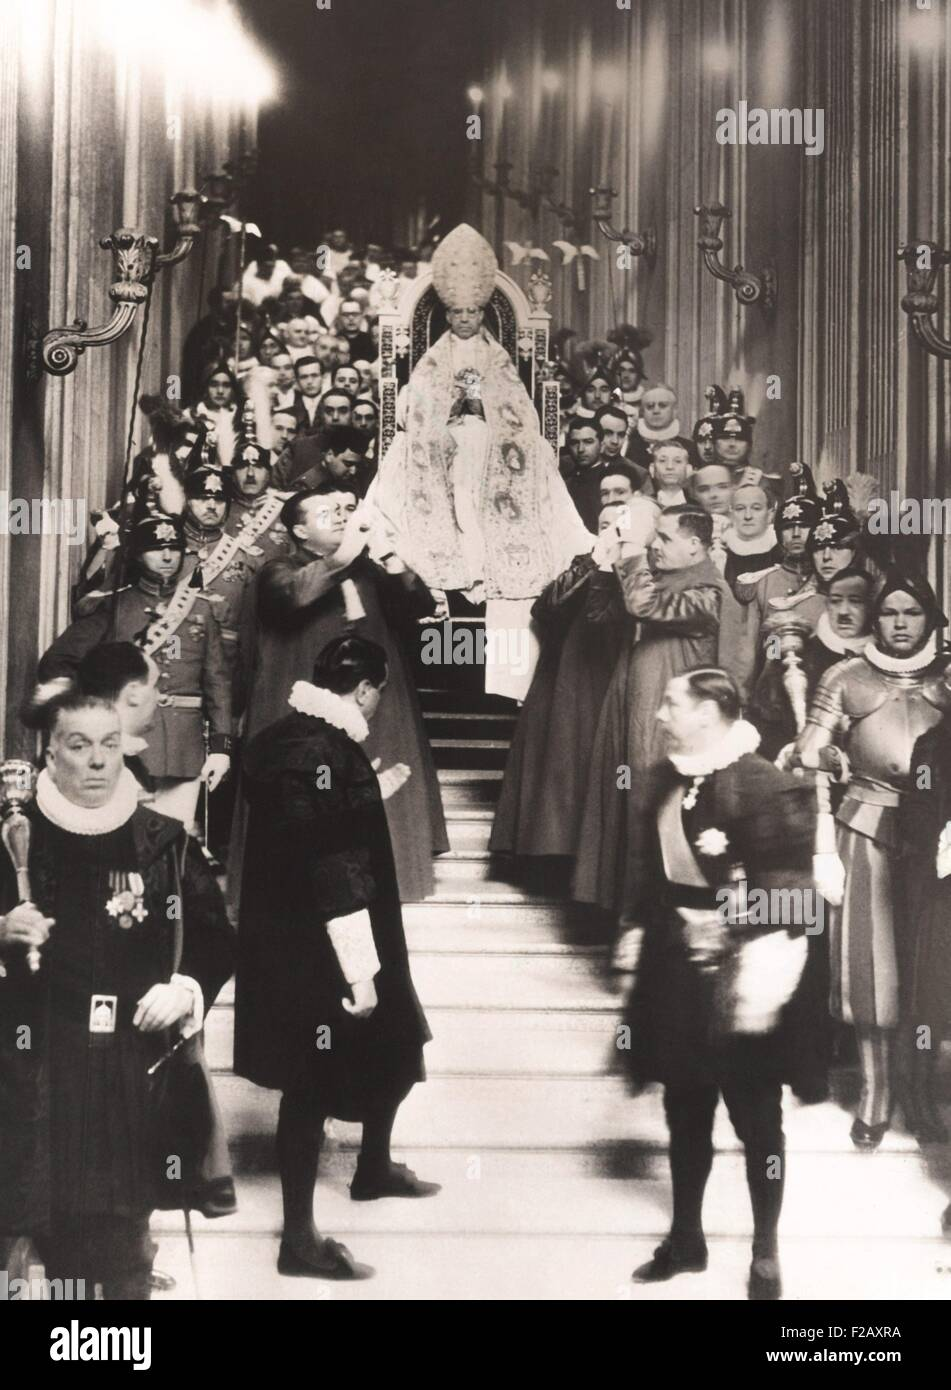 Coronation of Pope Pius XII, March 12, 1939. Flanked by Swiss guards and Church dignitaries, Pope Pius XII, was - Stock Image